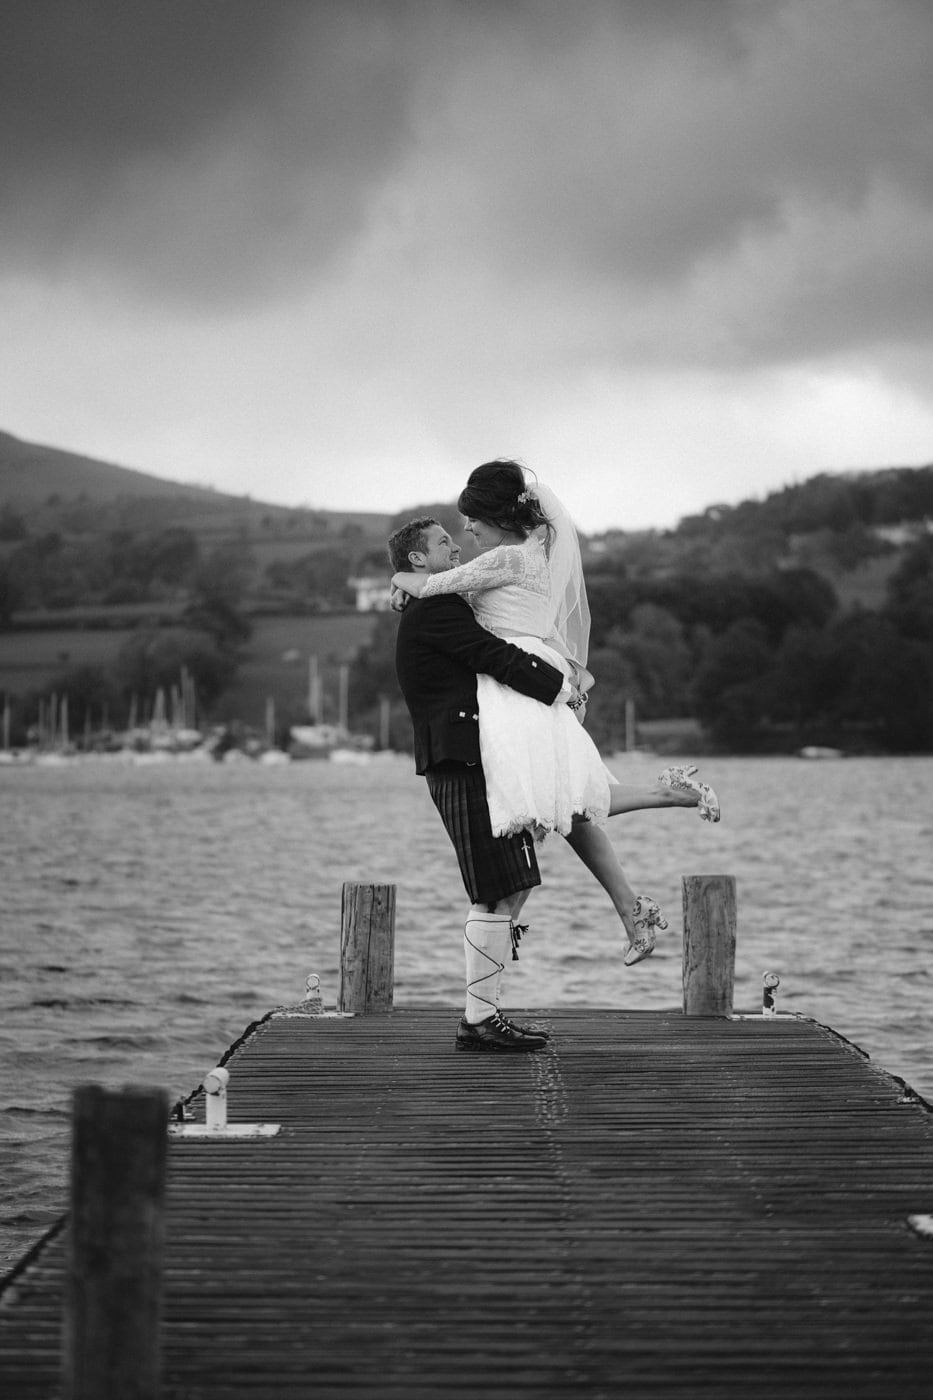 Bride Lifted up by Groom by Waters edge at Tipi Wedding On The Shores Of Ullswater